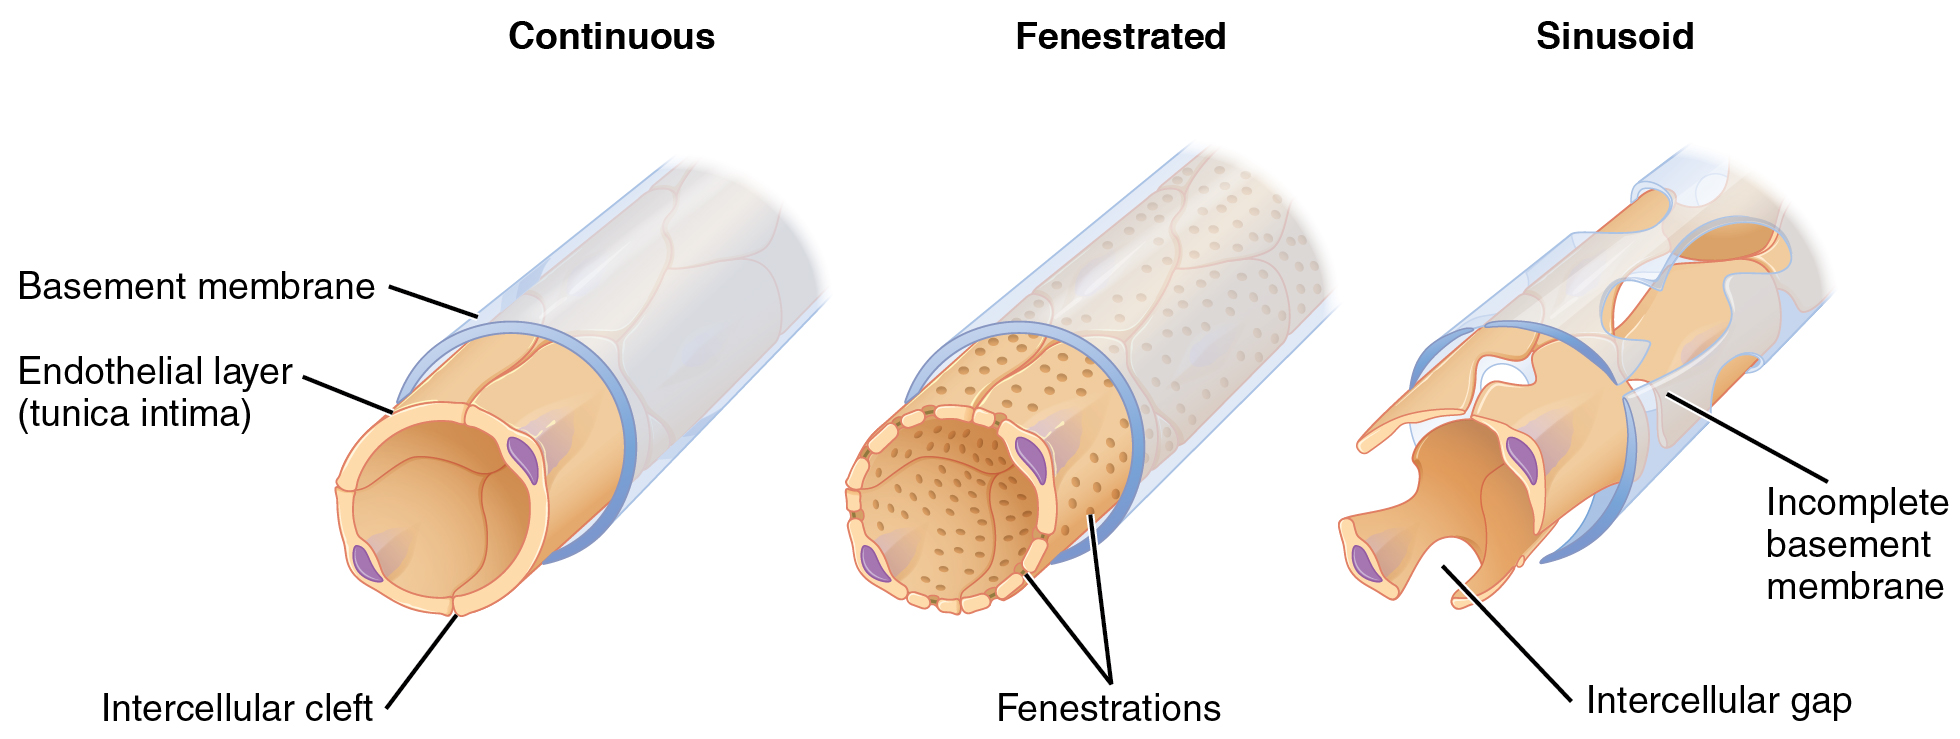 The left panel shows the structure of a continuous capillary, the middle panel shows a fenestrated capillary, and the right panel shows a sinusoid capillary.